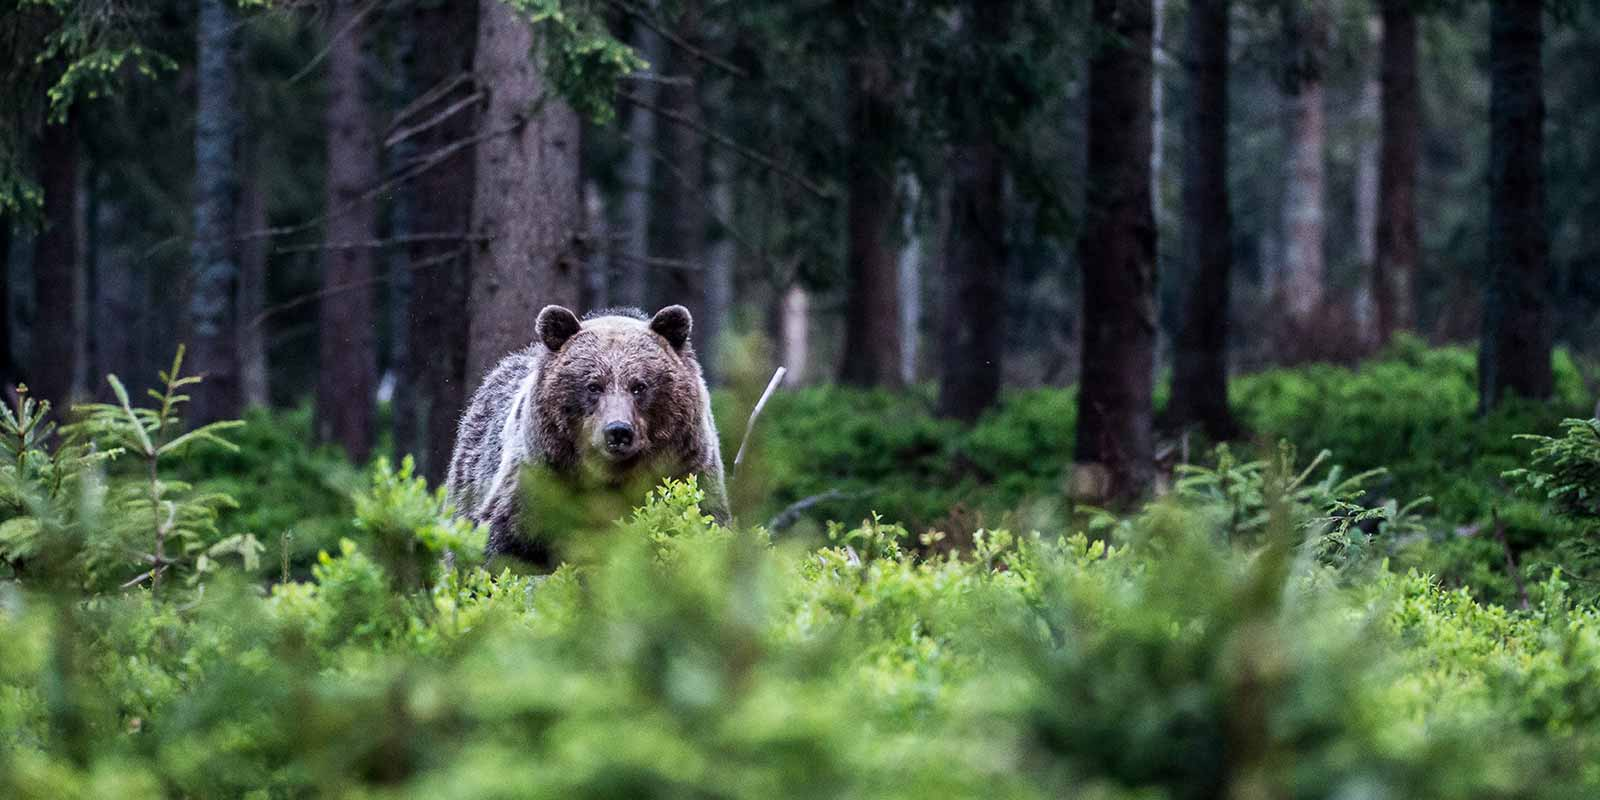 European brown bear in the forest